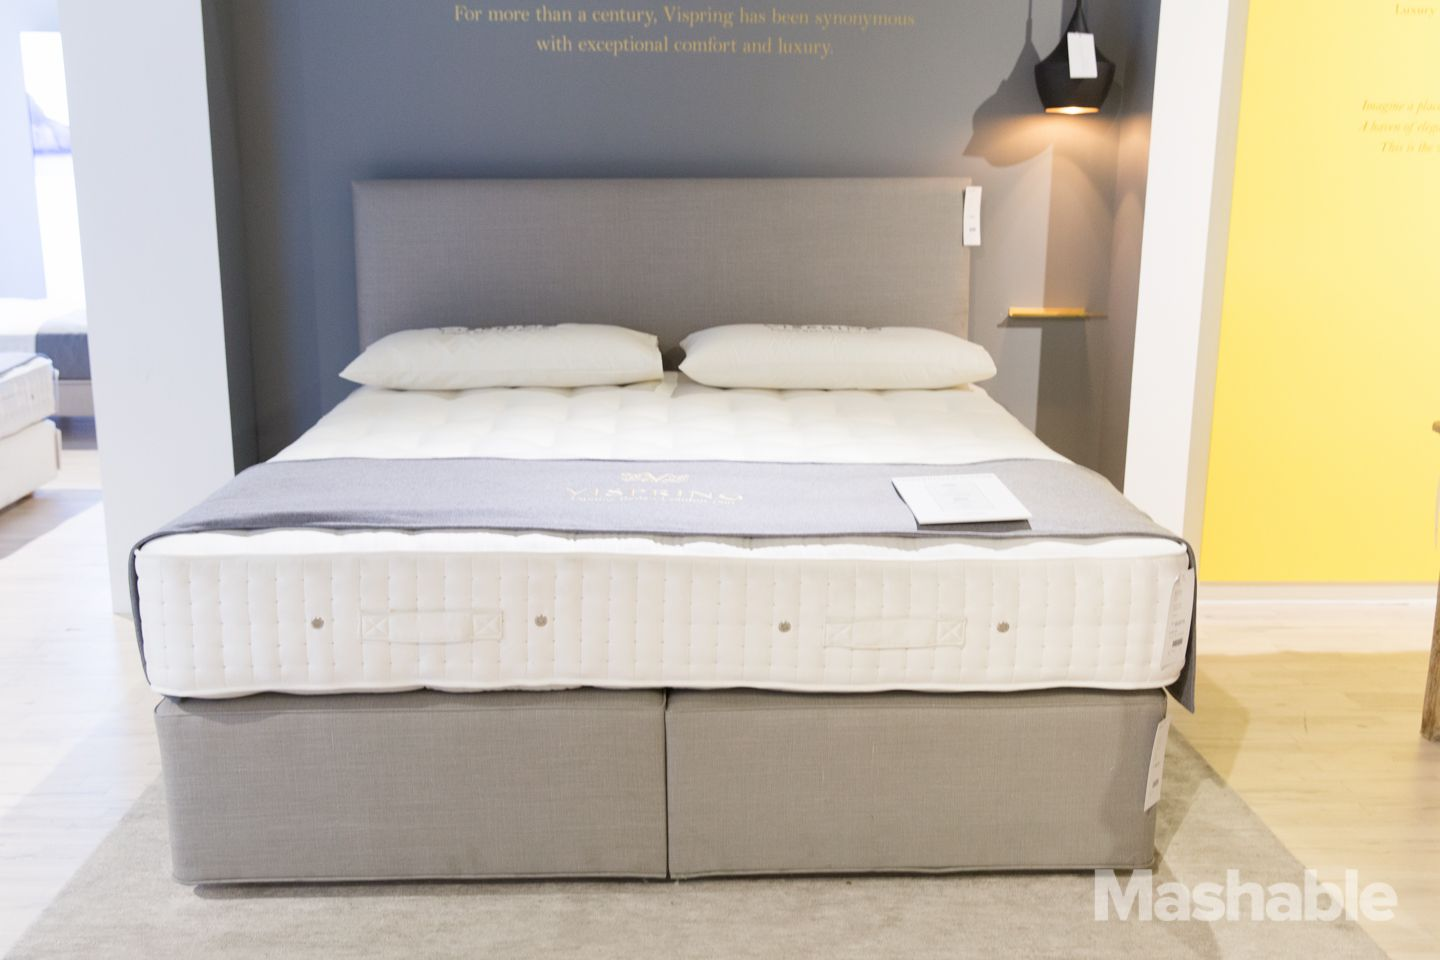 Dreams Mattress Guarantee The Six Figure Mattress Inside The World Of Luxury Sleep Pads